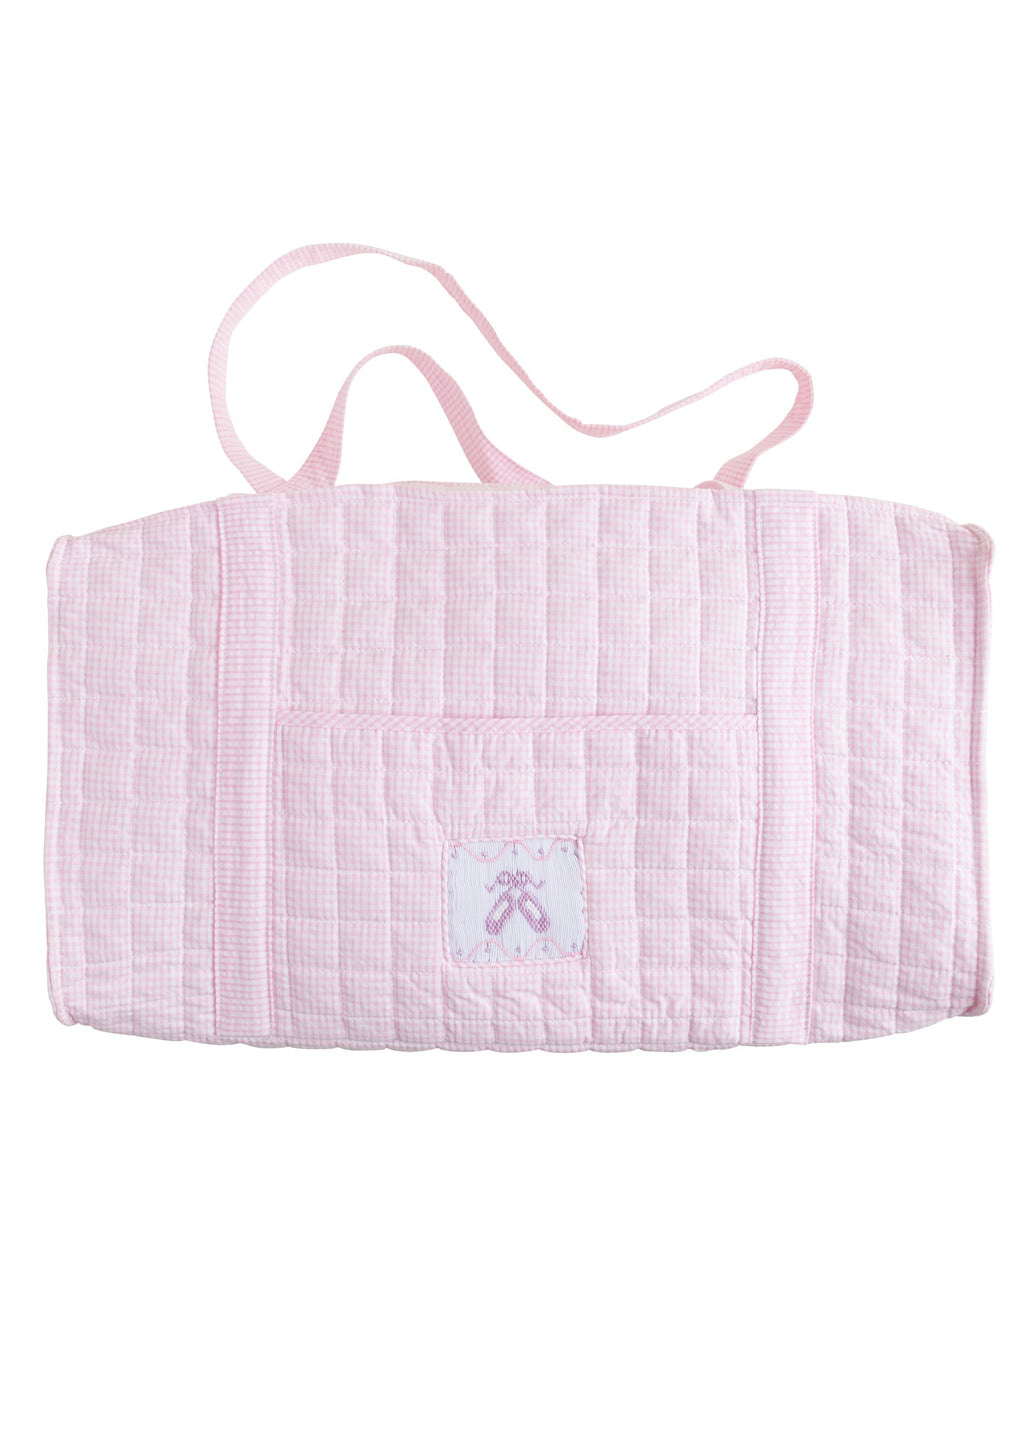 Quilted Ballet Duffle Bag - Born Childrens Boutique